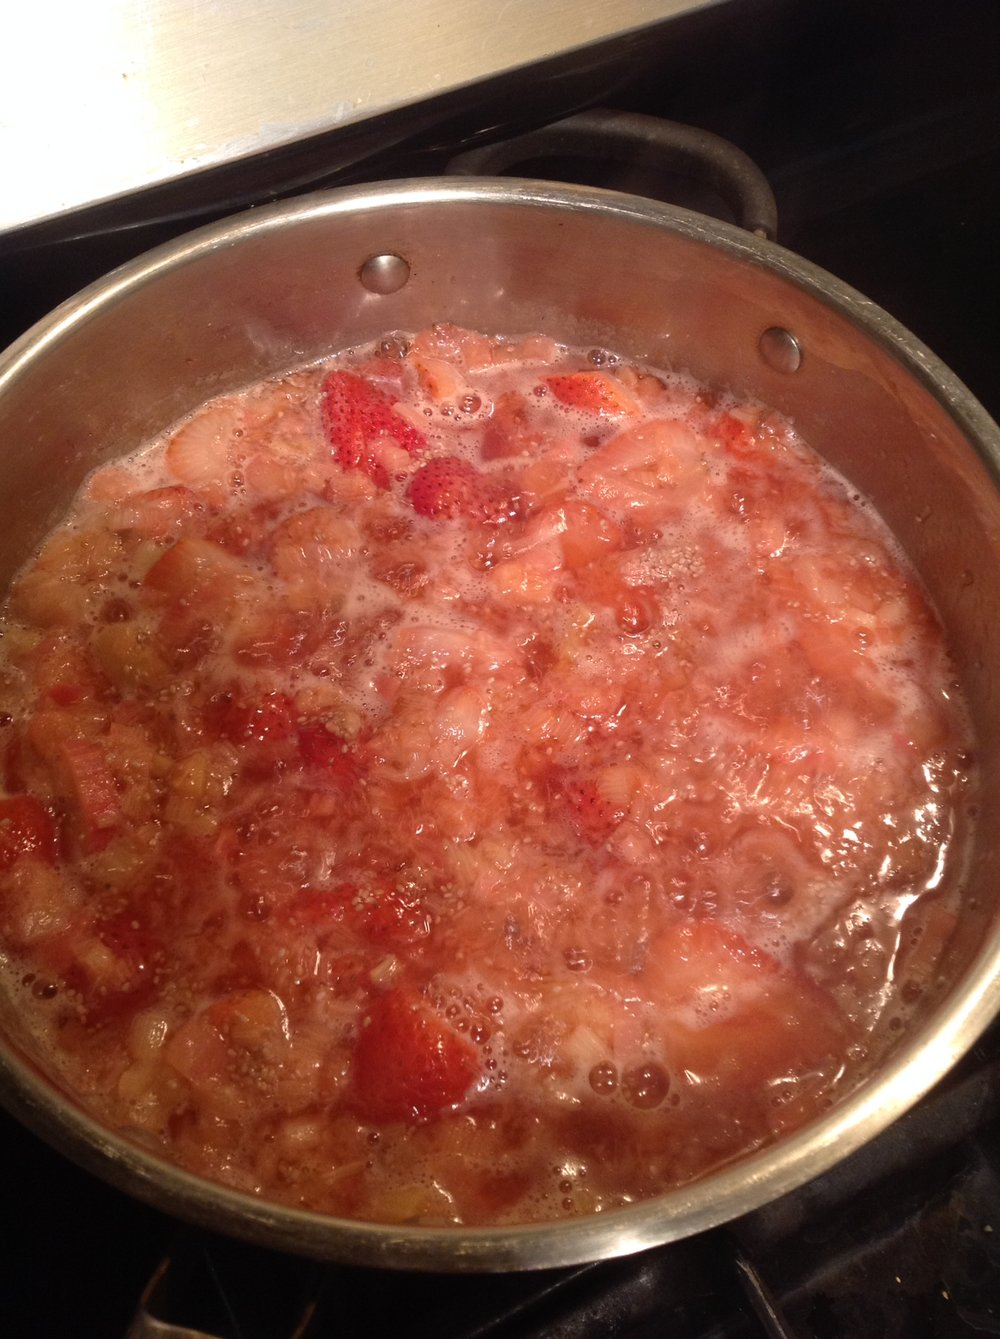 Chef's Tip:  To retain the crunchy texture, only simmer rhubarb for 10-15 minutes.